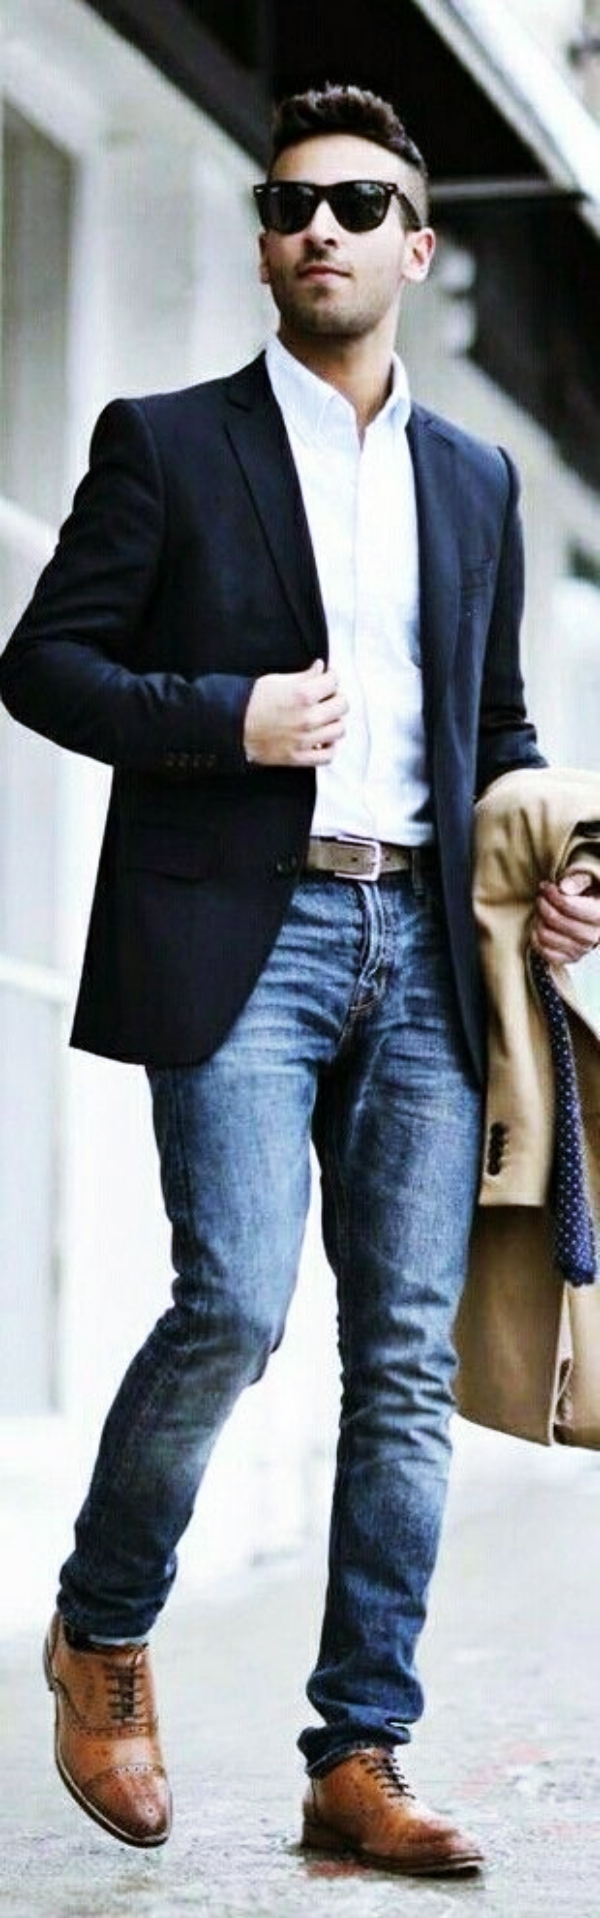 Gentleman's-Guide-to-Achieve-a-Winning-Look-at-Work